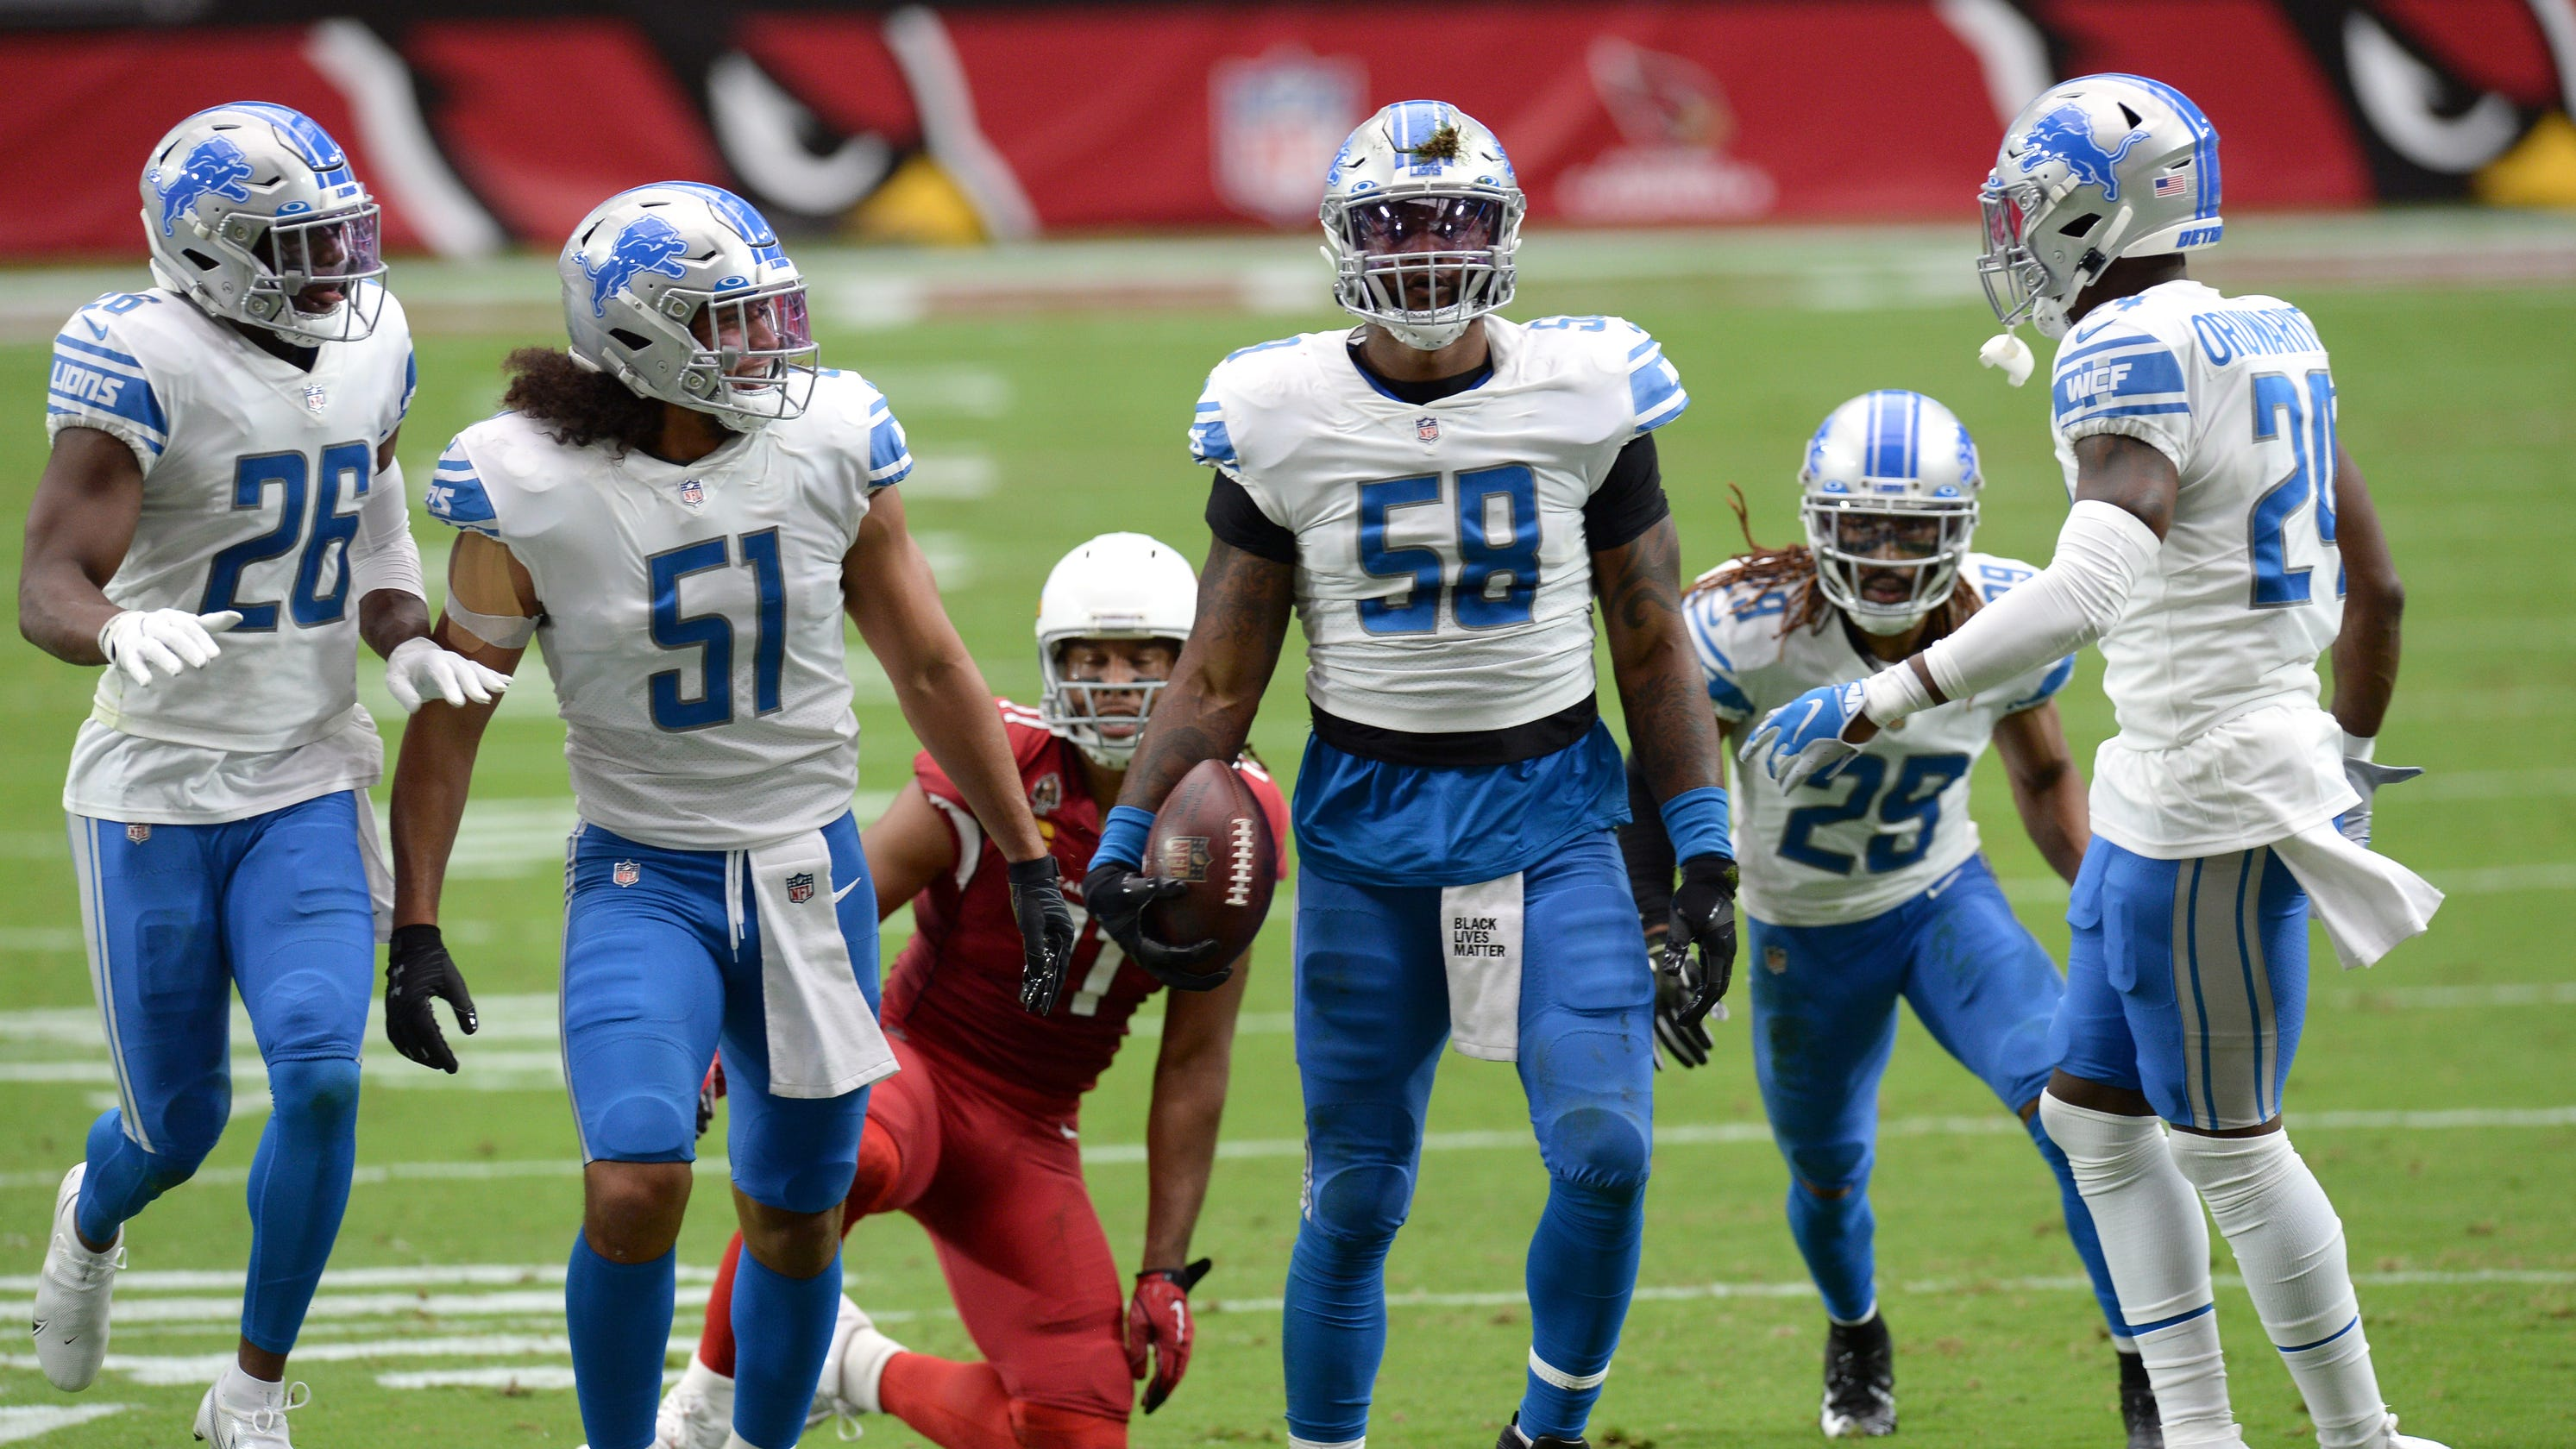 Lions snap 11-game losing streak by booting Cardinals on last-second field goal